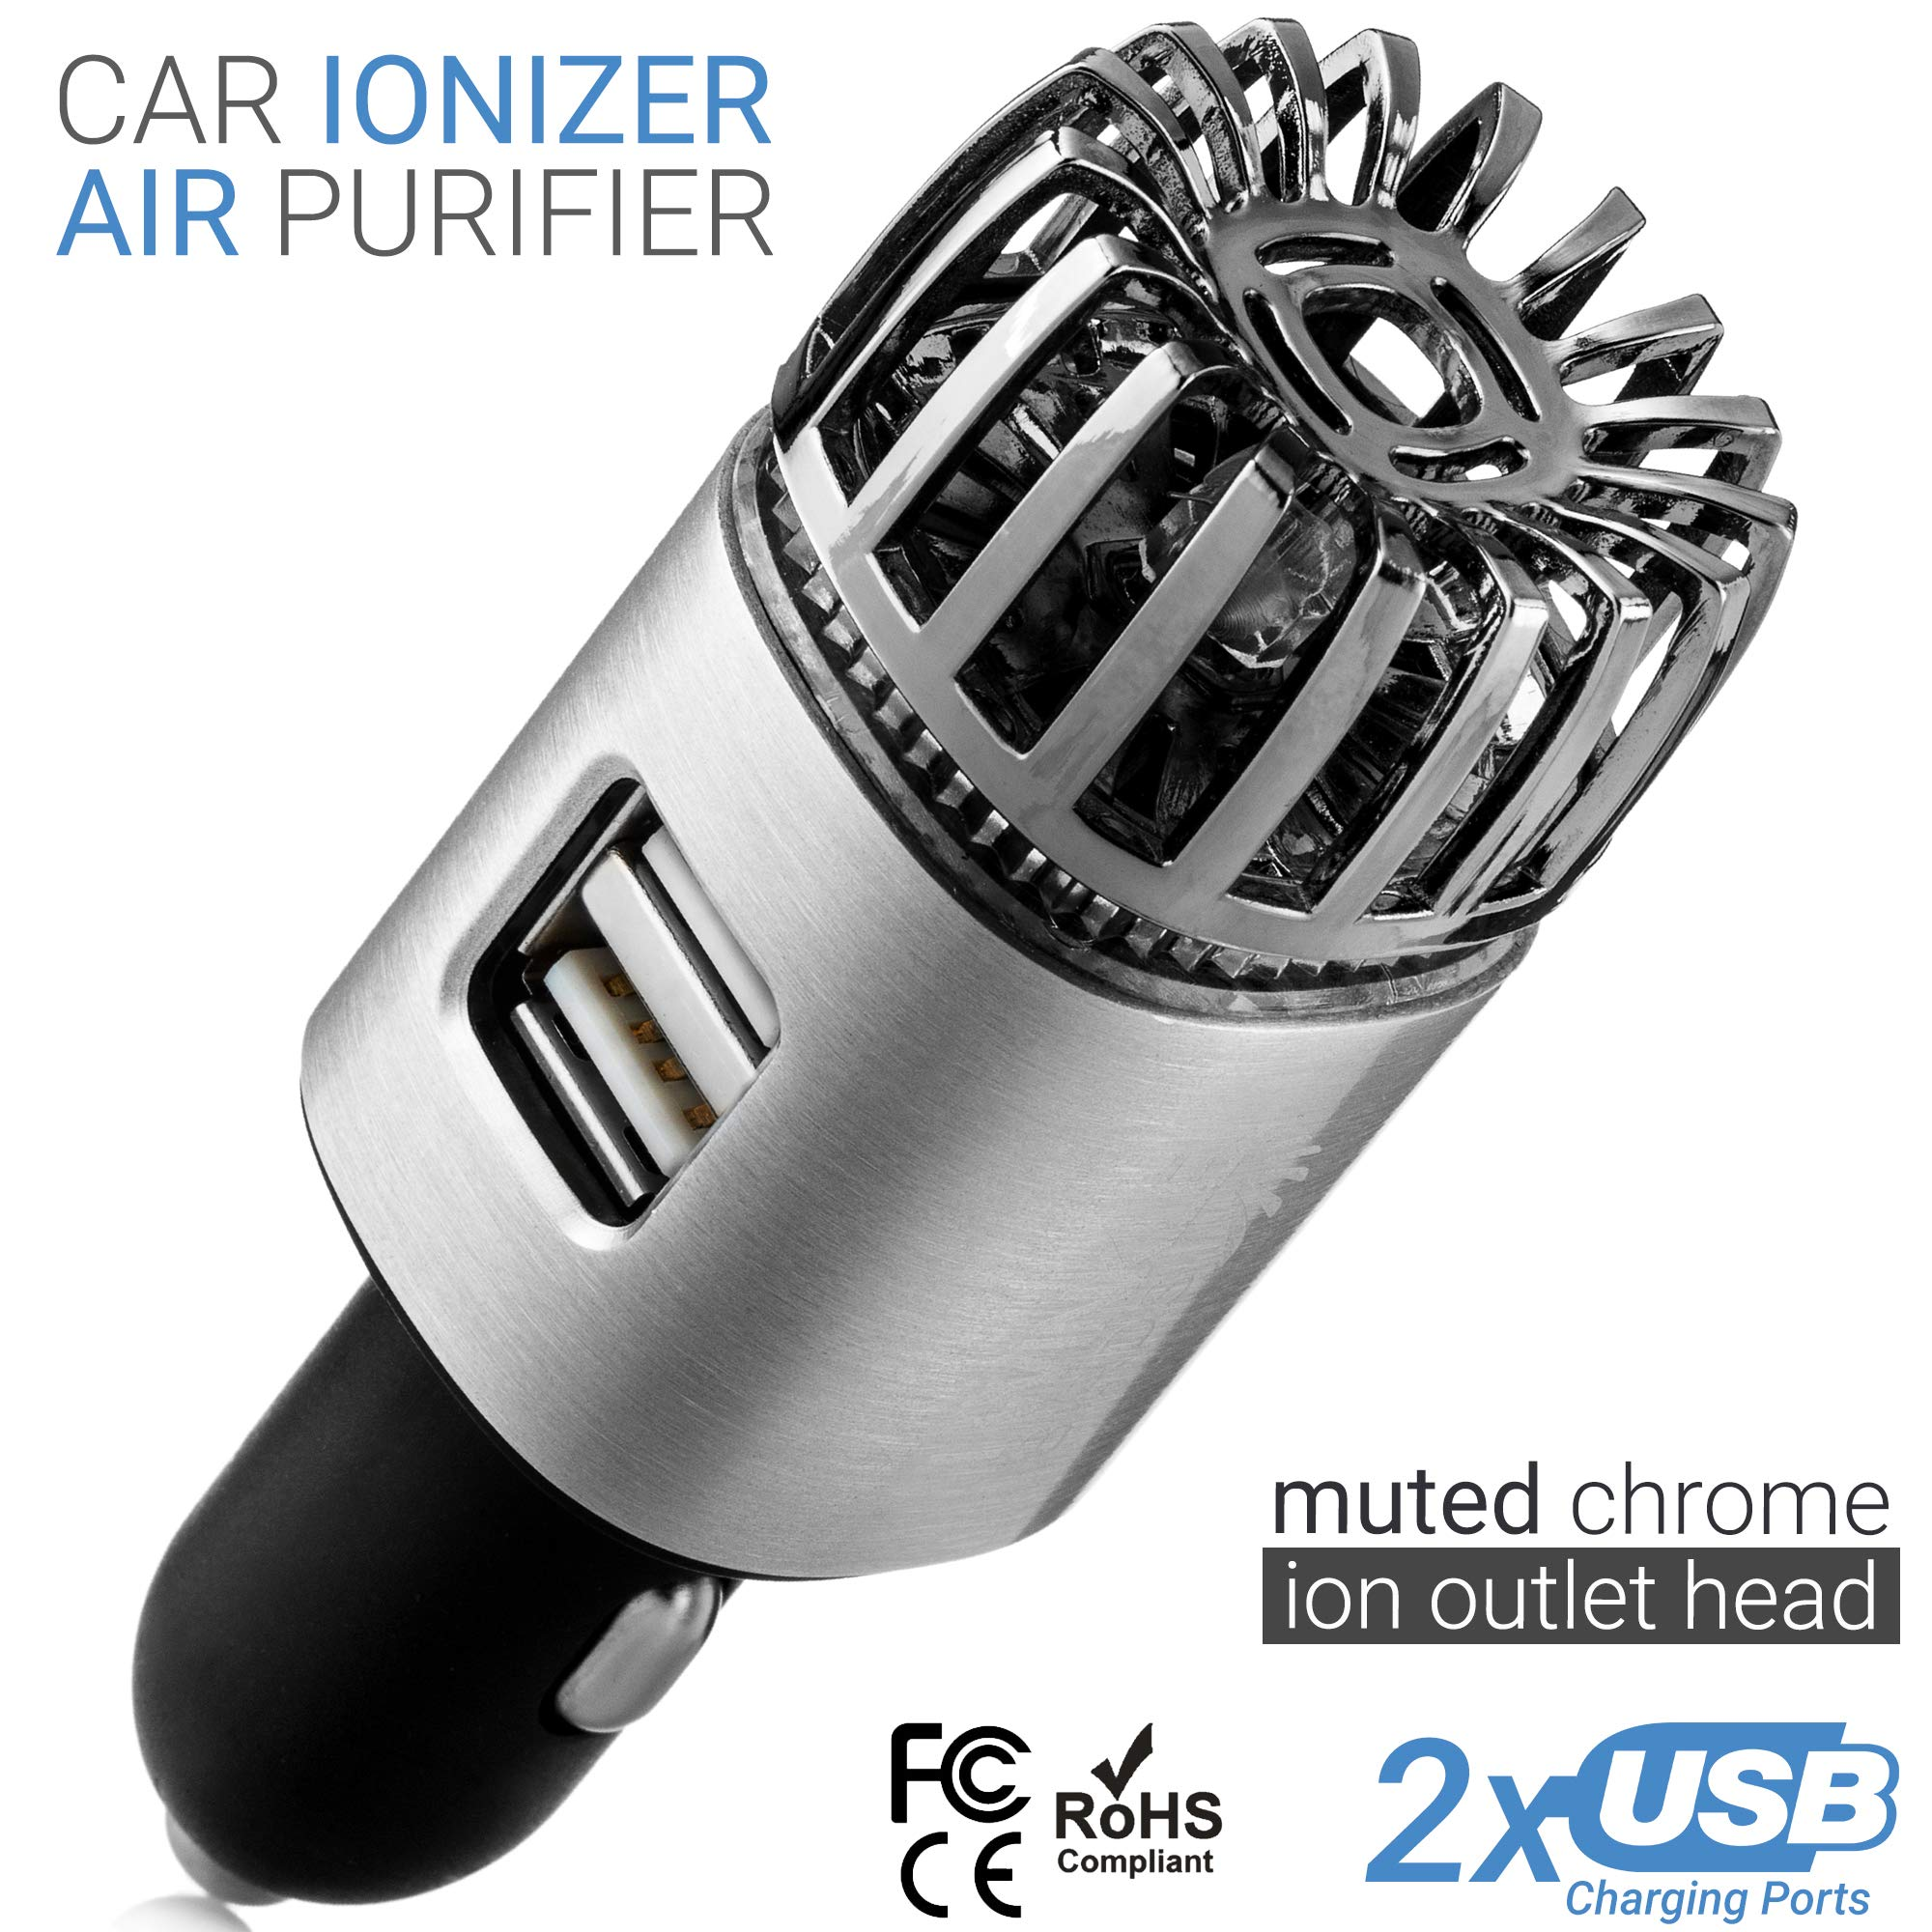 Car Air Purifier Ionizer - 12V Plug-in Ionic Anti-Microbial Car Deodorizer with Dual USB Charger - Smoke Smell, Pet and Food Odors, Allergens, Viruses Eliminator for Car (Matte Silver) by TwinkleBirds